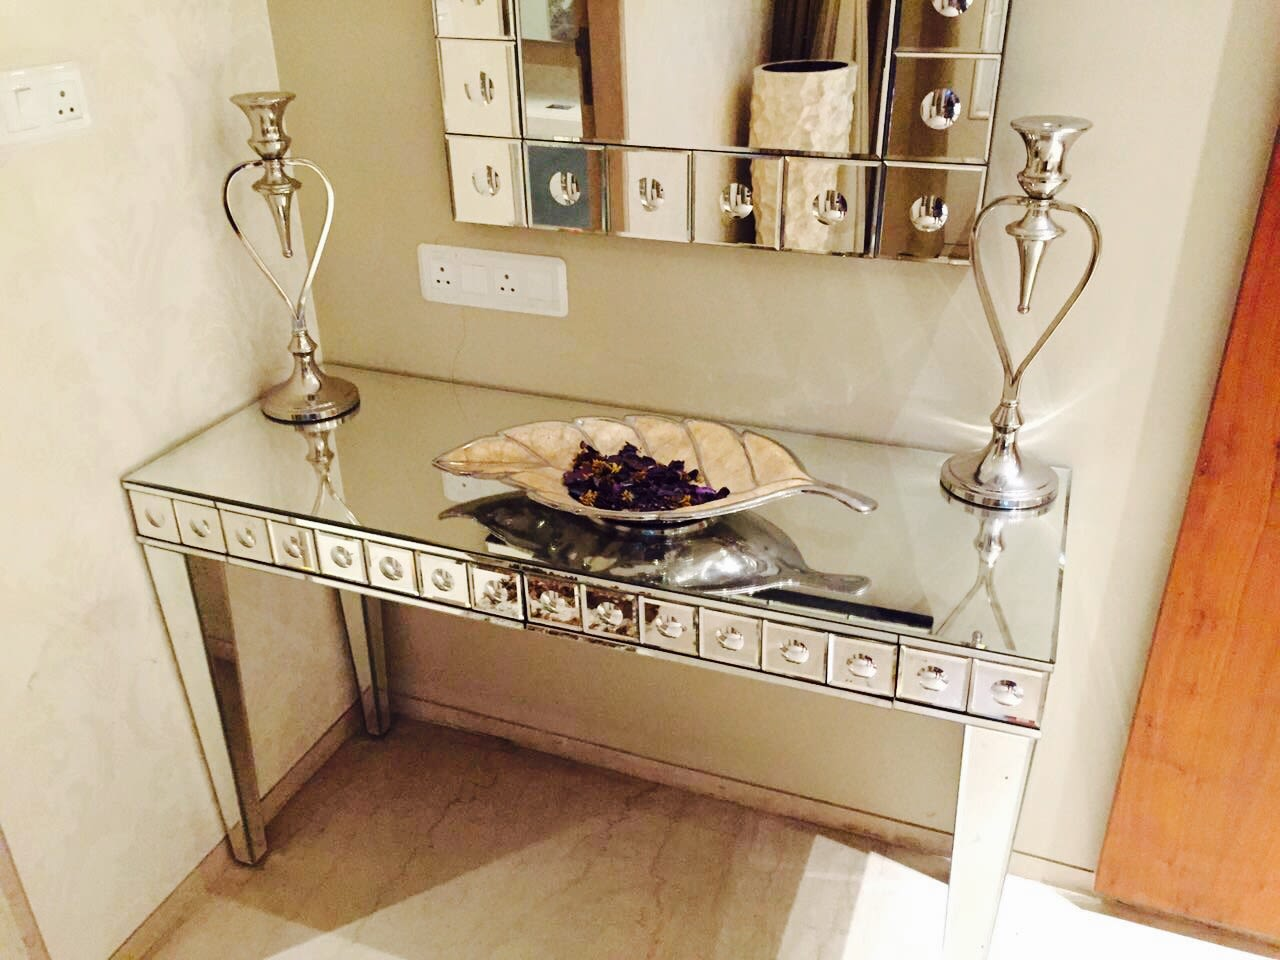 Stunning Silver Display Unit by Anshuma Vaidya Bora Living-room Contemporary | Interior Design Photos & Ideas